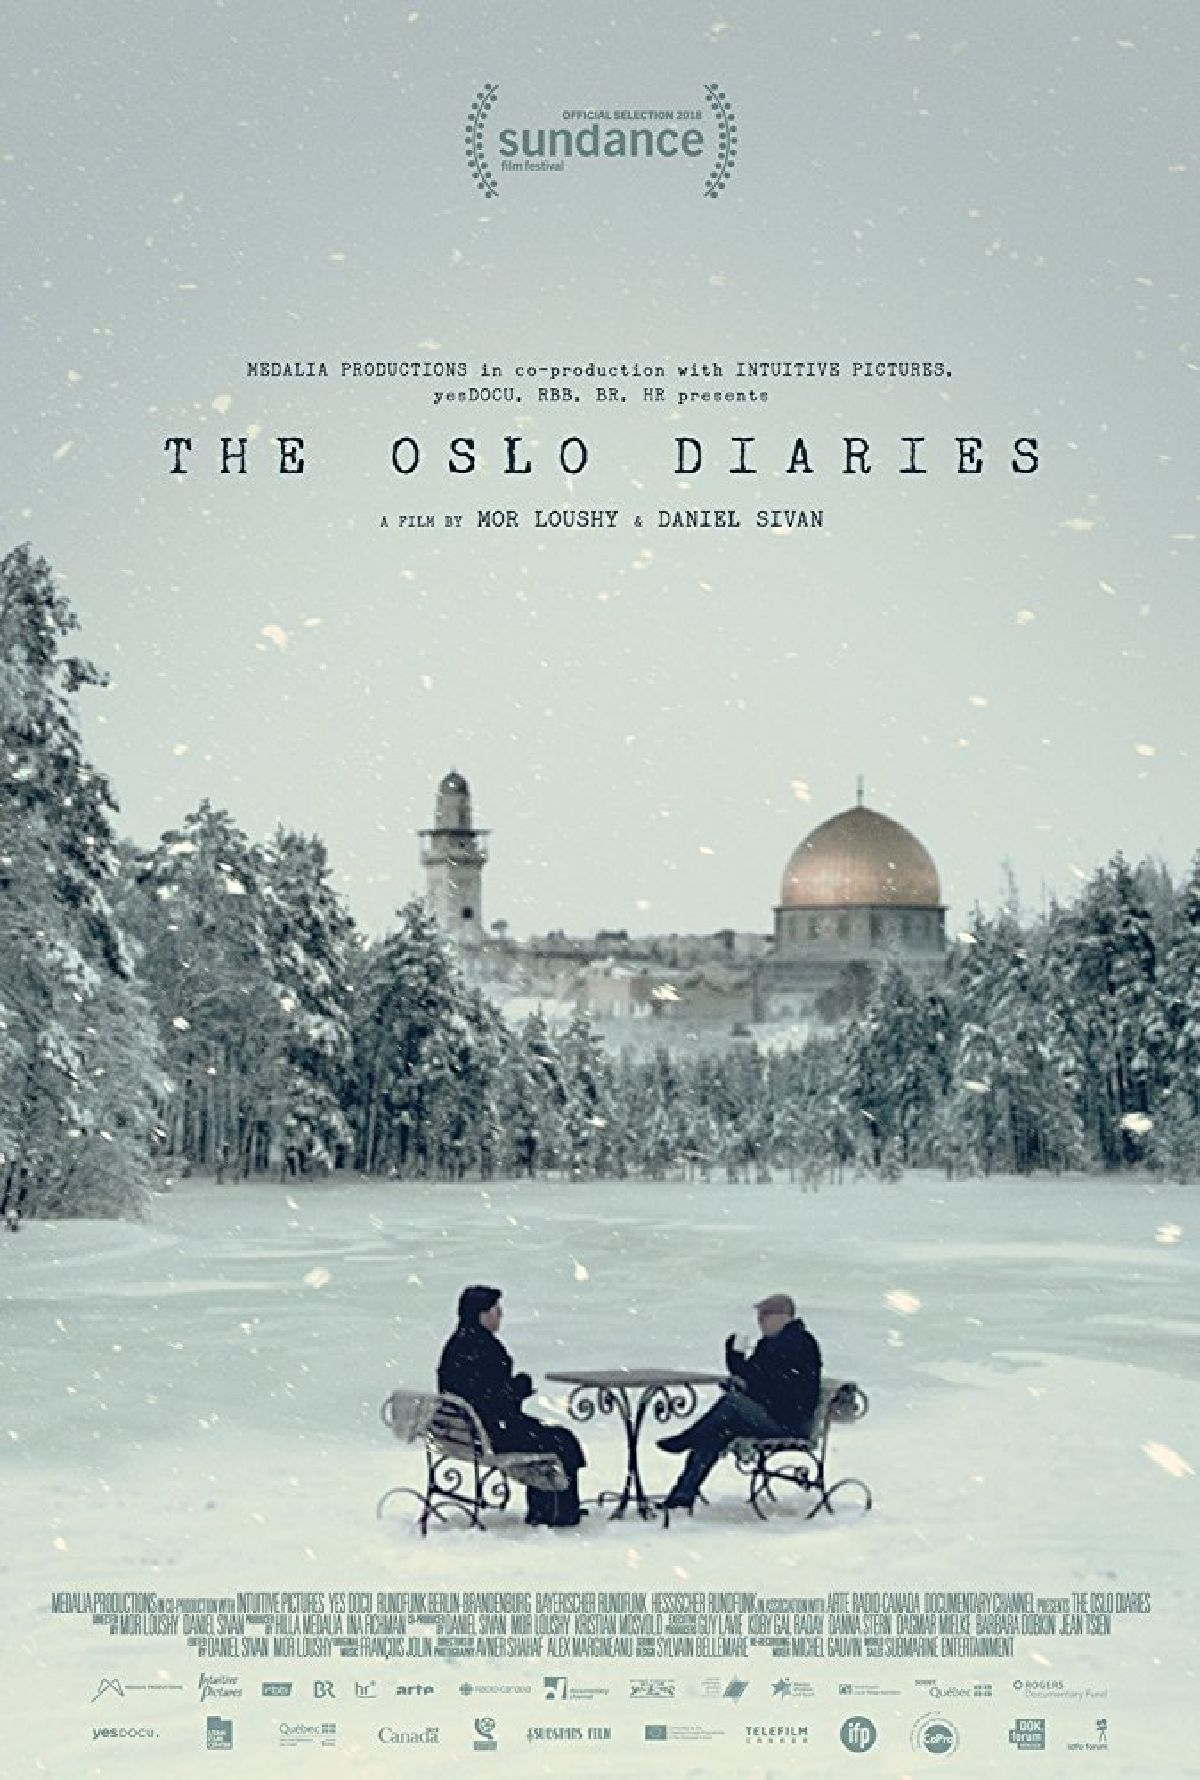 'The Oslo Diaries' movie poster